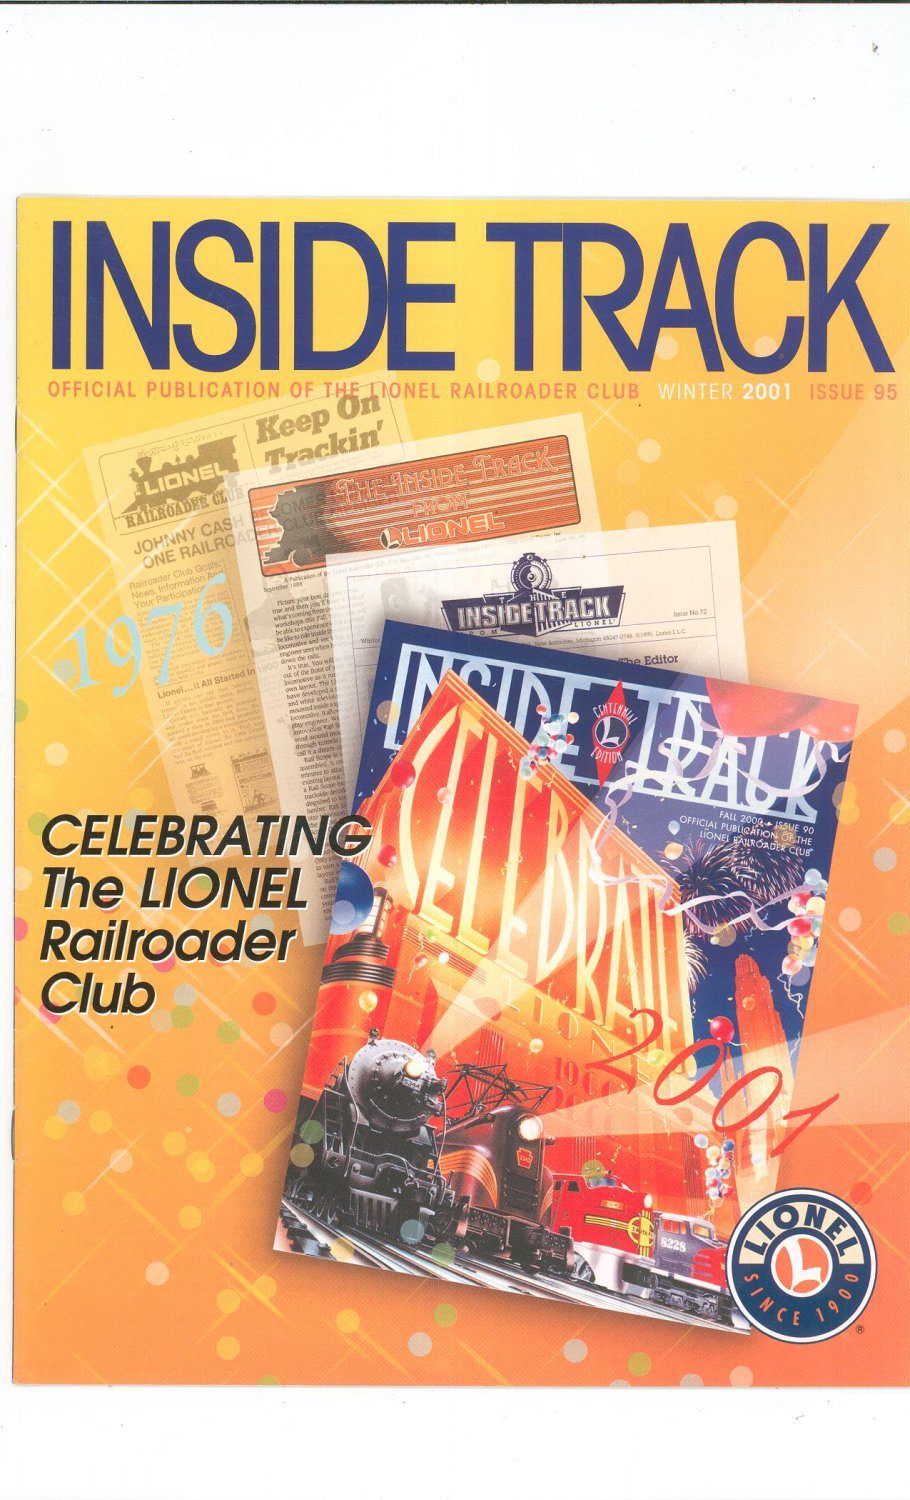 Lionel Railroader Club Inside Track Winter 2001 Issue 95